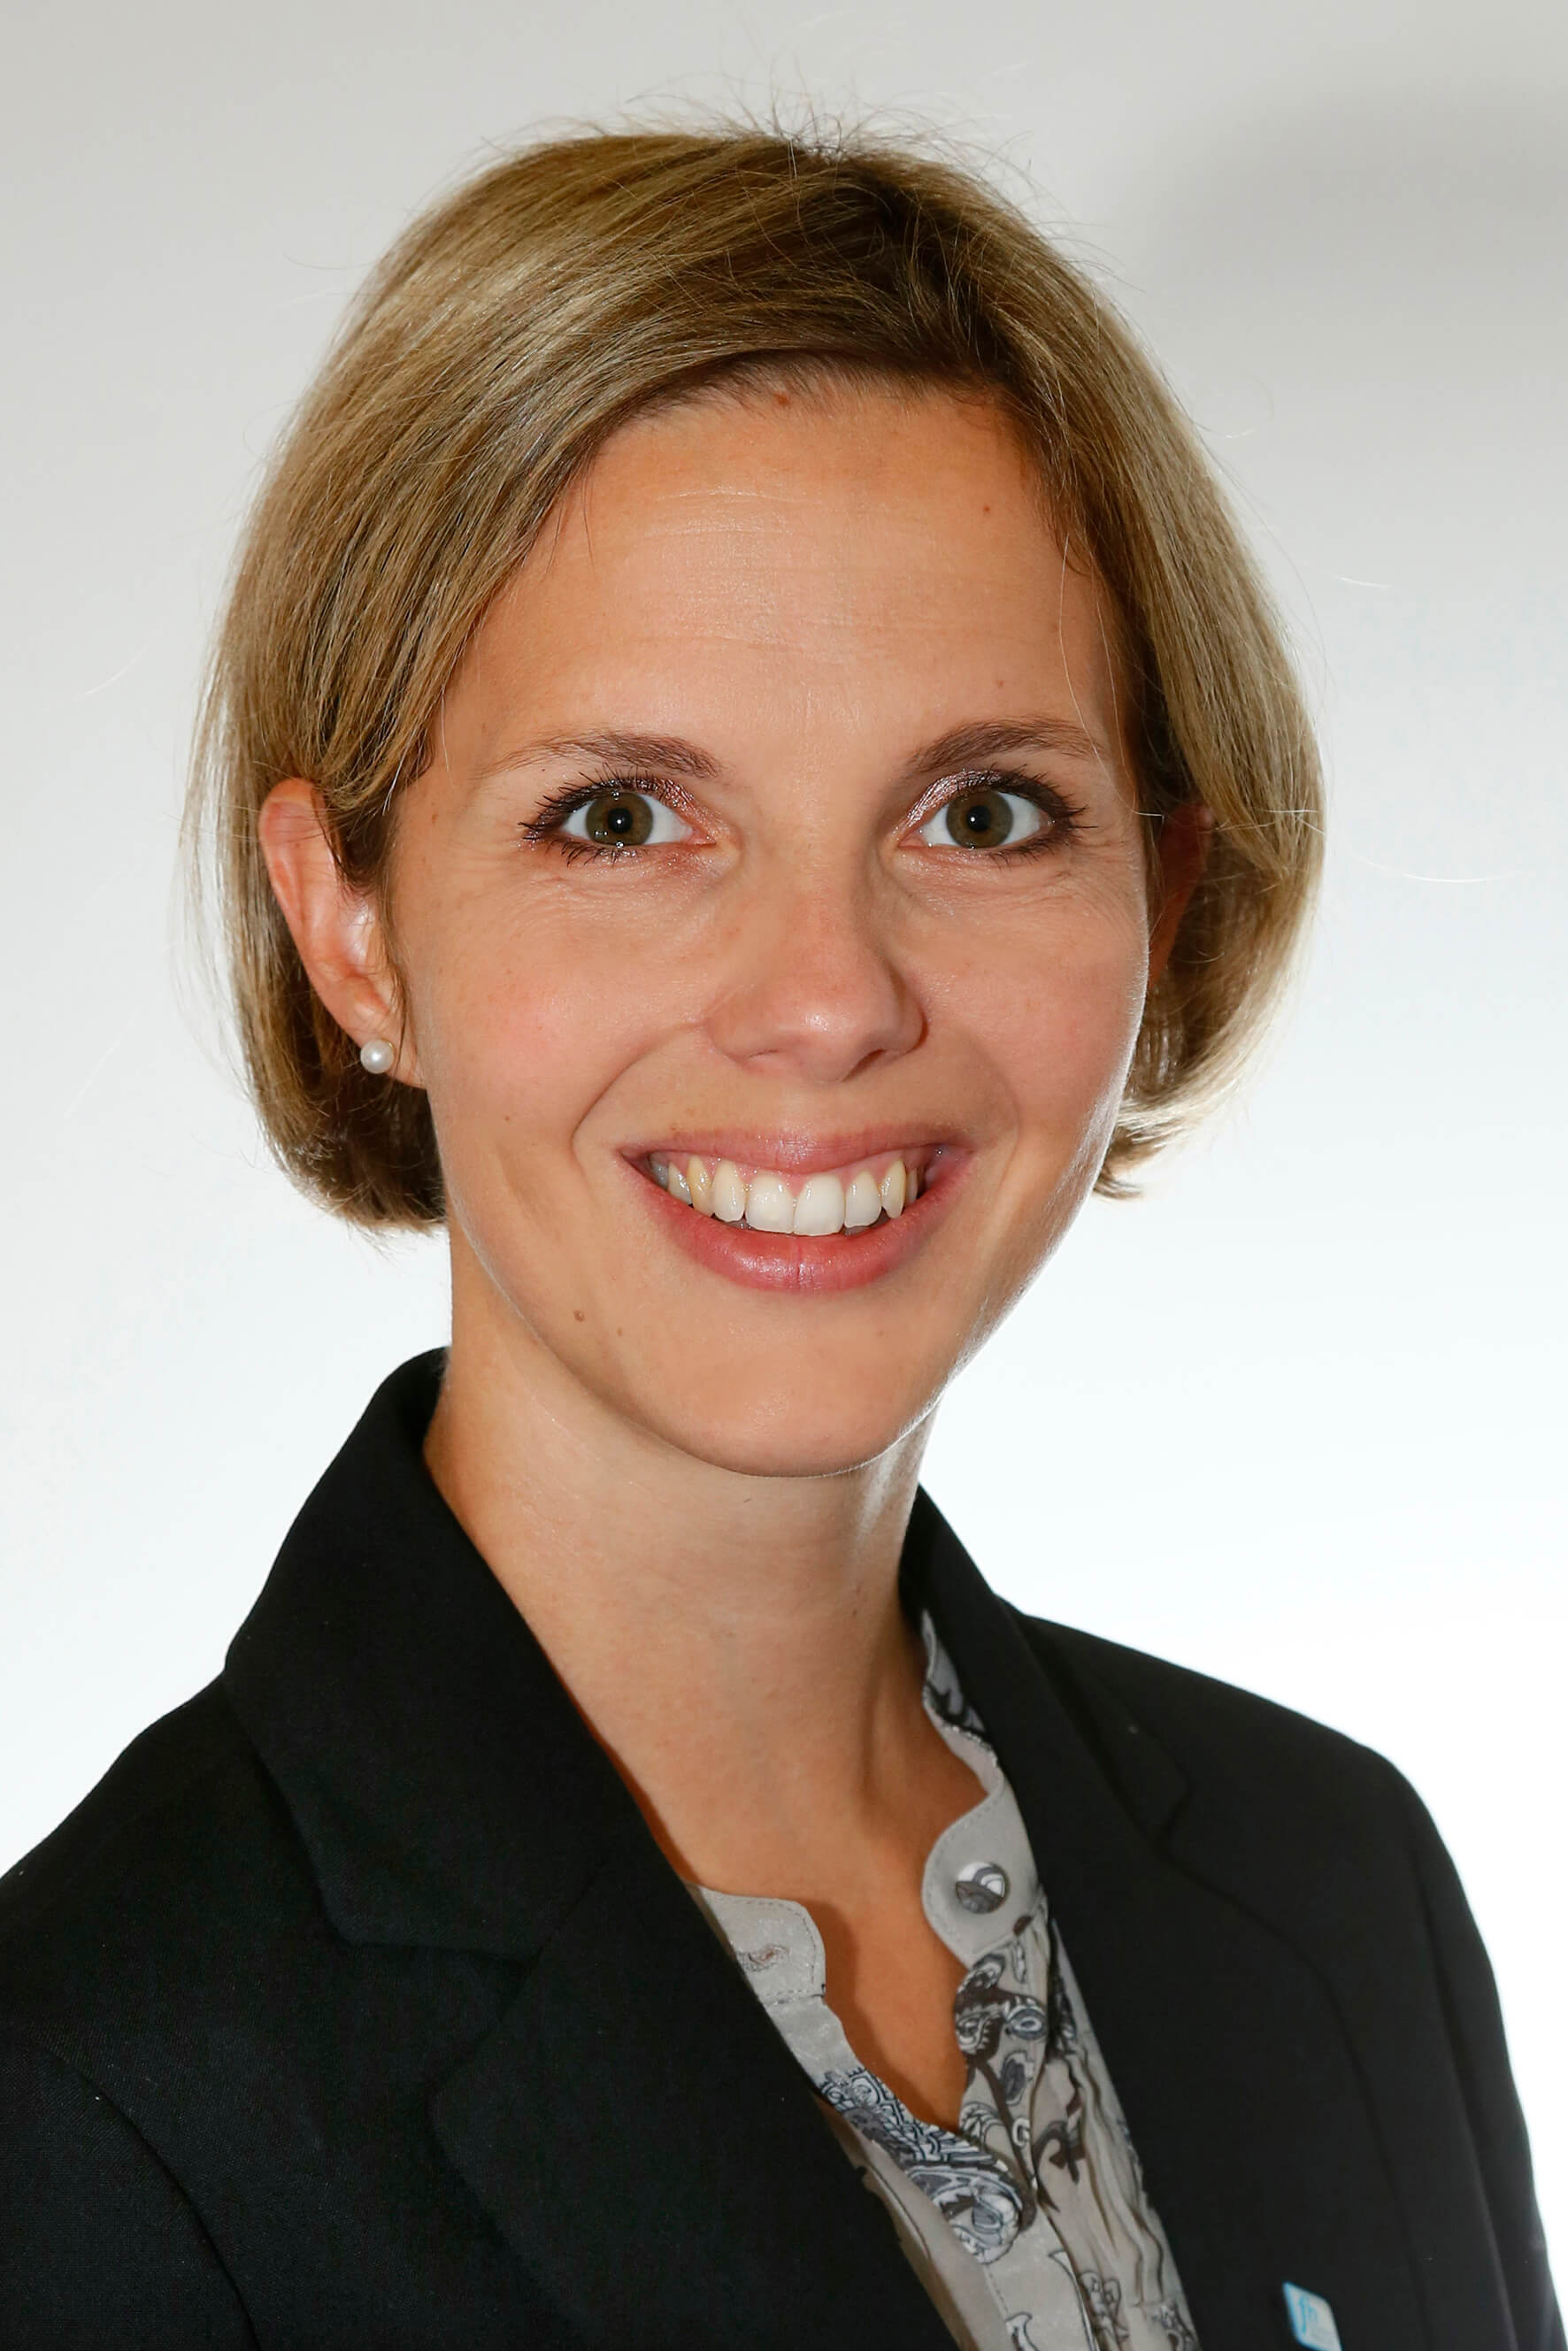 Christina Rinnhofer